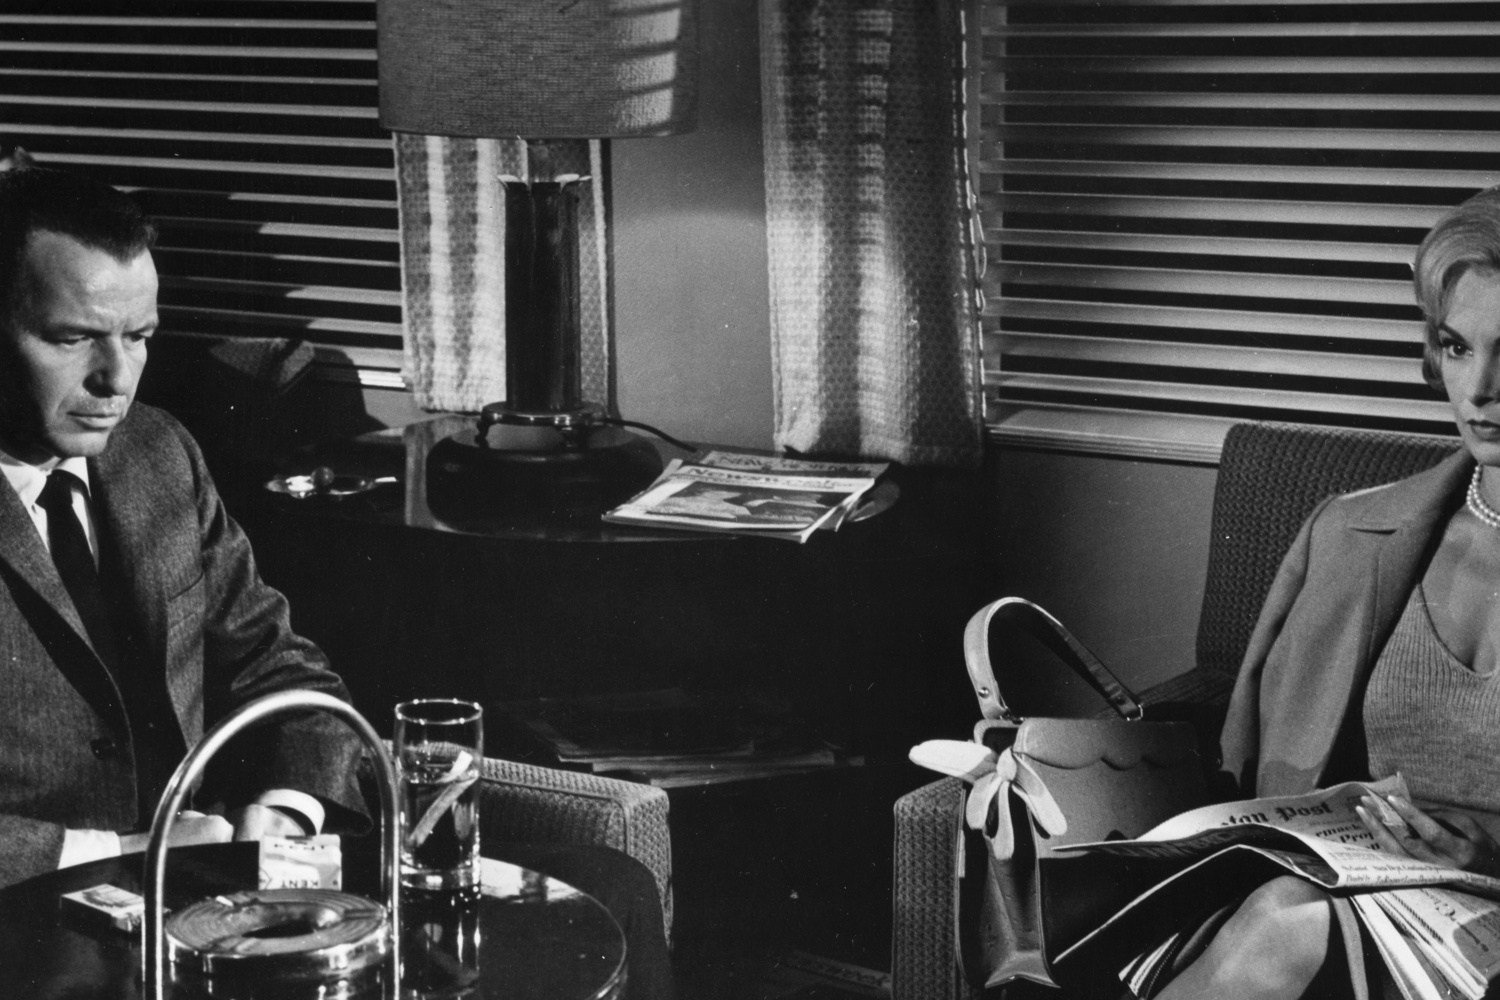 The Manchurian Candidate. 1962. USA. Directed by John Frankenheimer